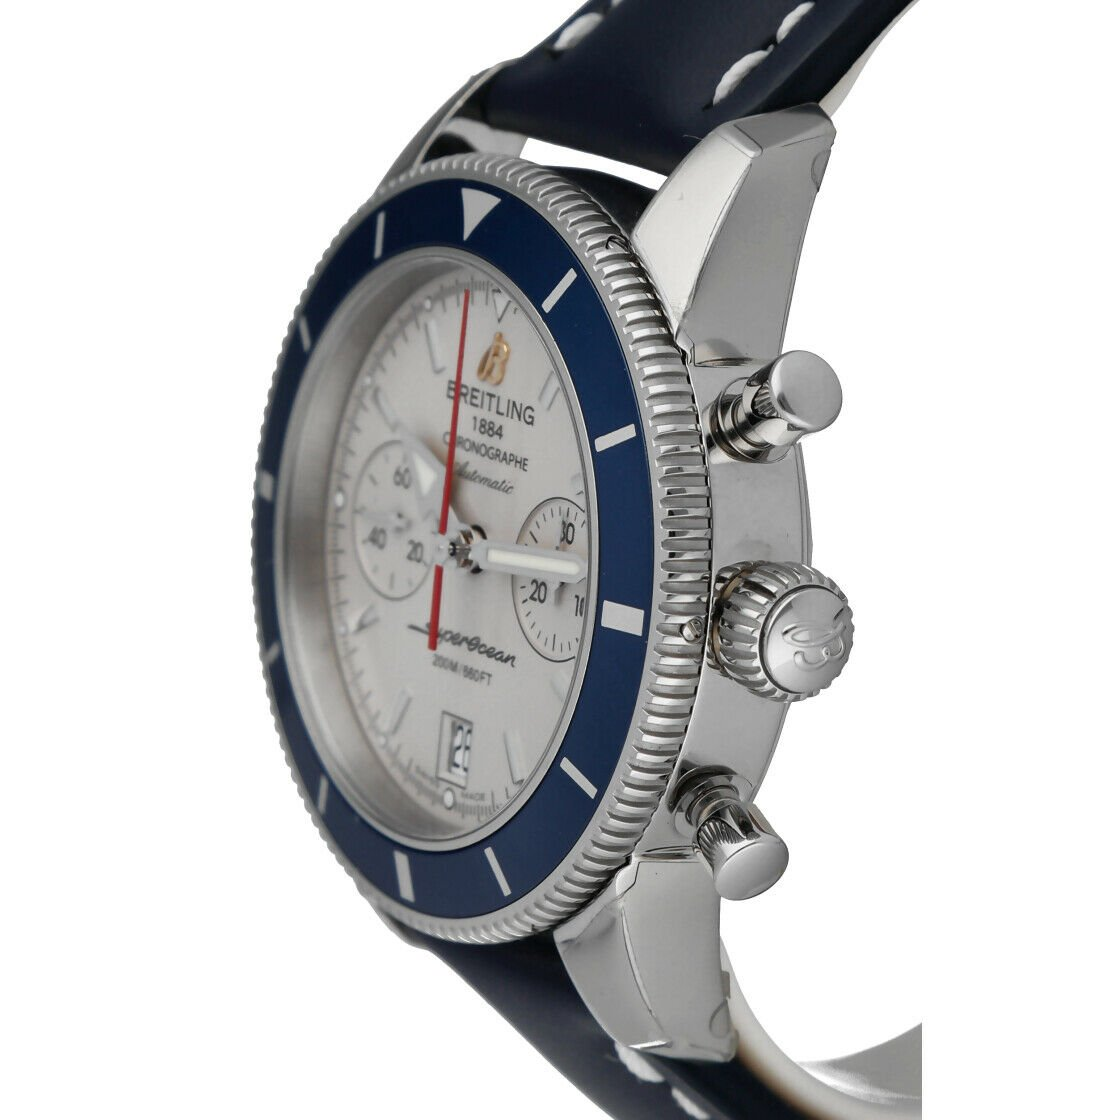 Breitling A23370 Superocean Heritage 44 Silver Chrono Leather Auto Mens Watch 114428920667 3